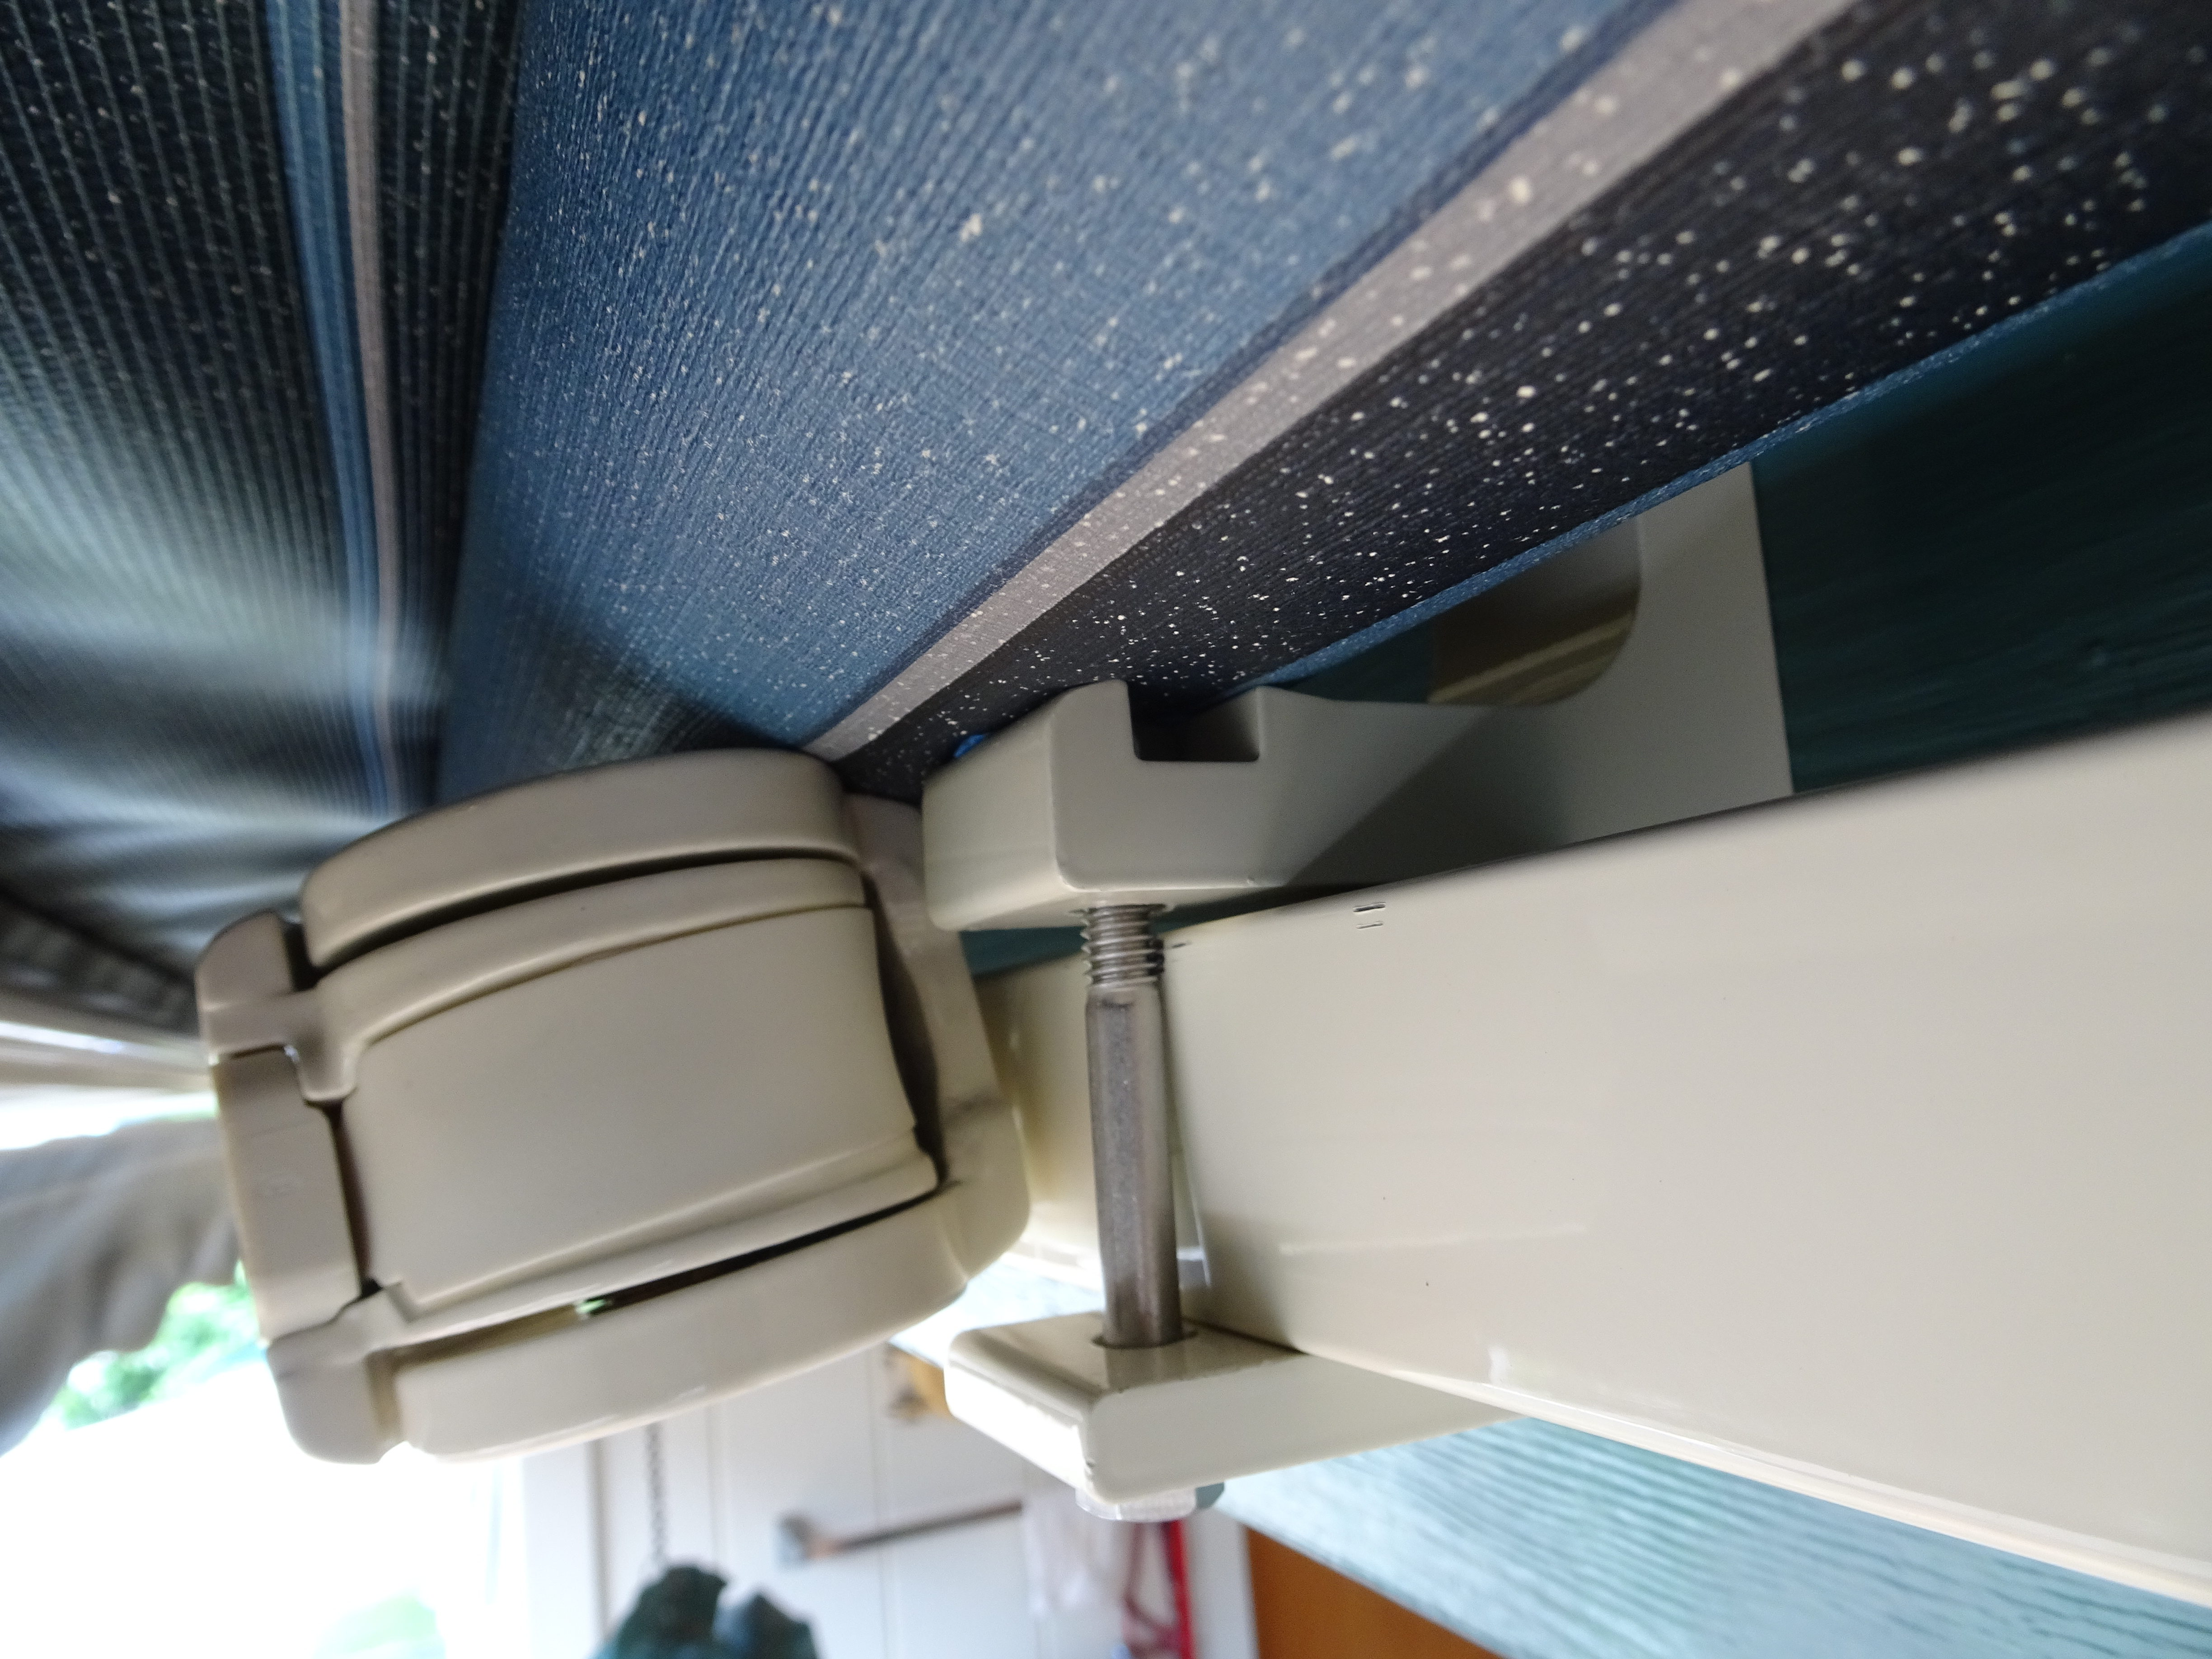 Top 458 Reviews And Complaints About Sunsetter Awnings